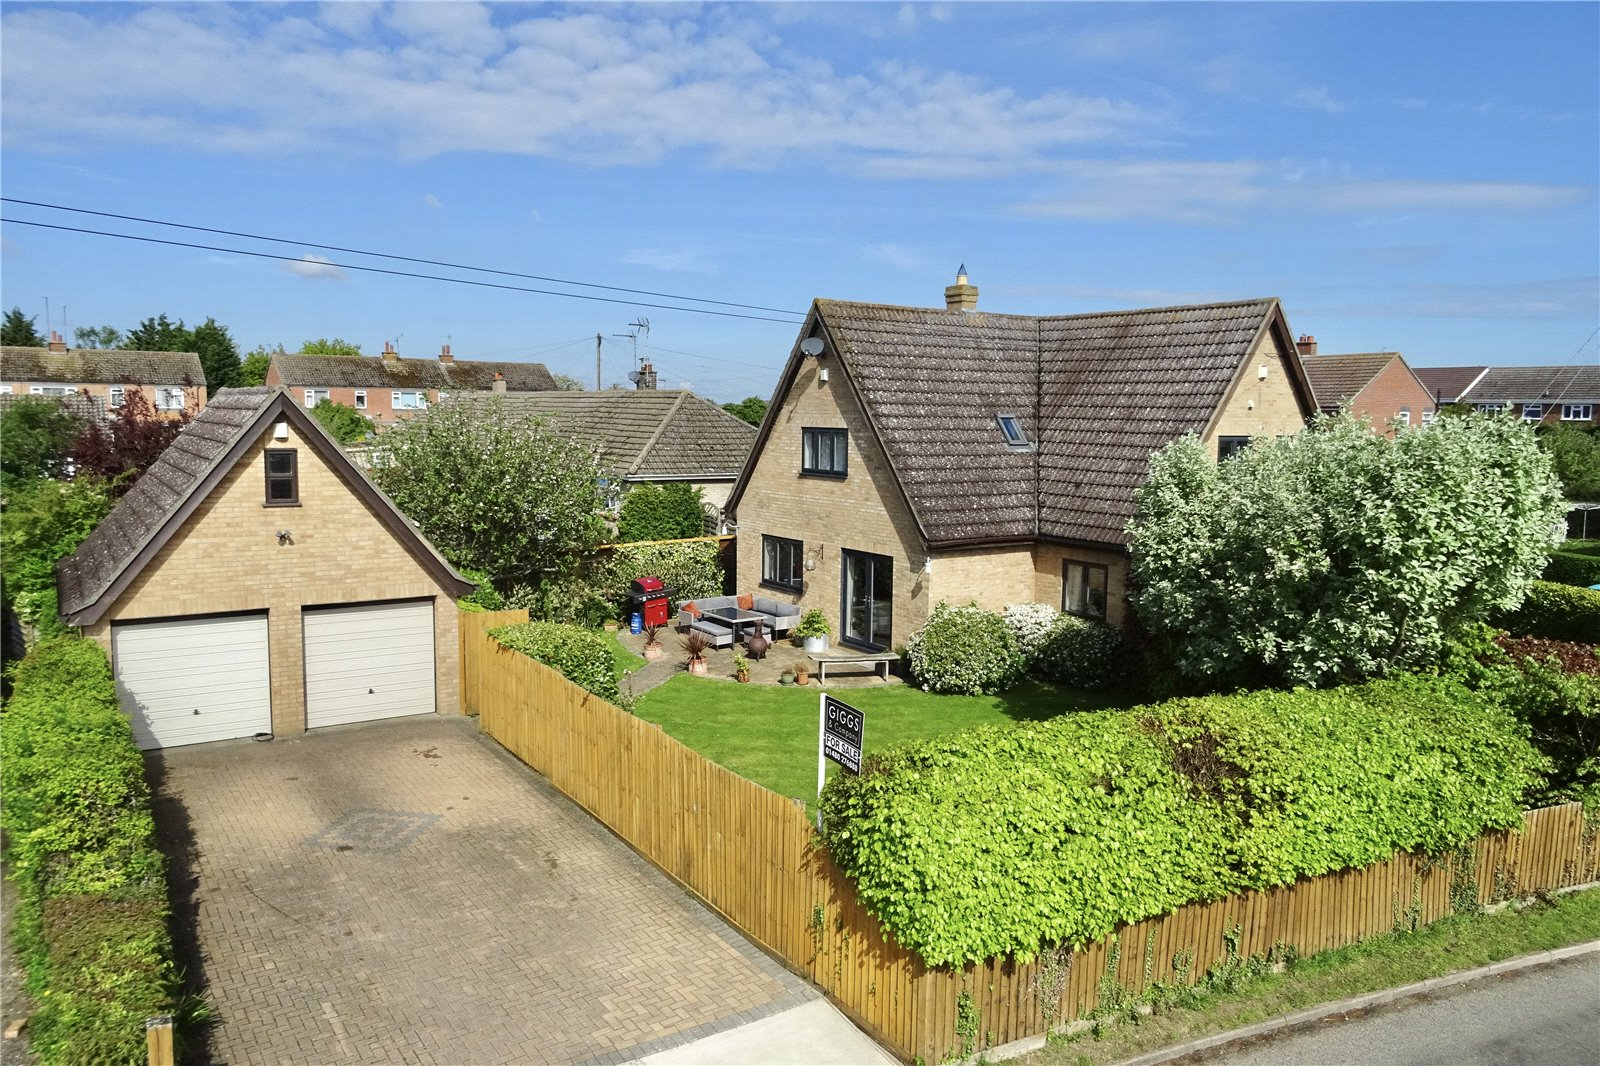 4 bed house for sale in The Green, Ellington - Property Image 1